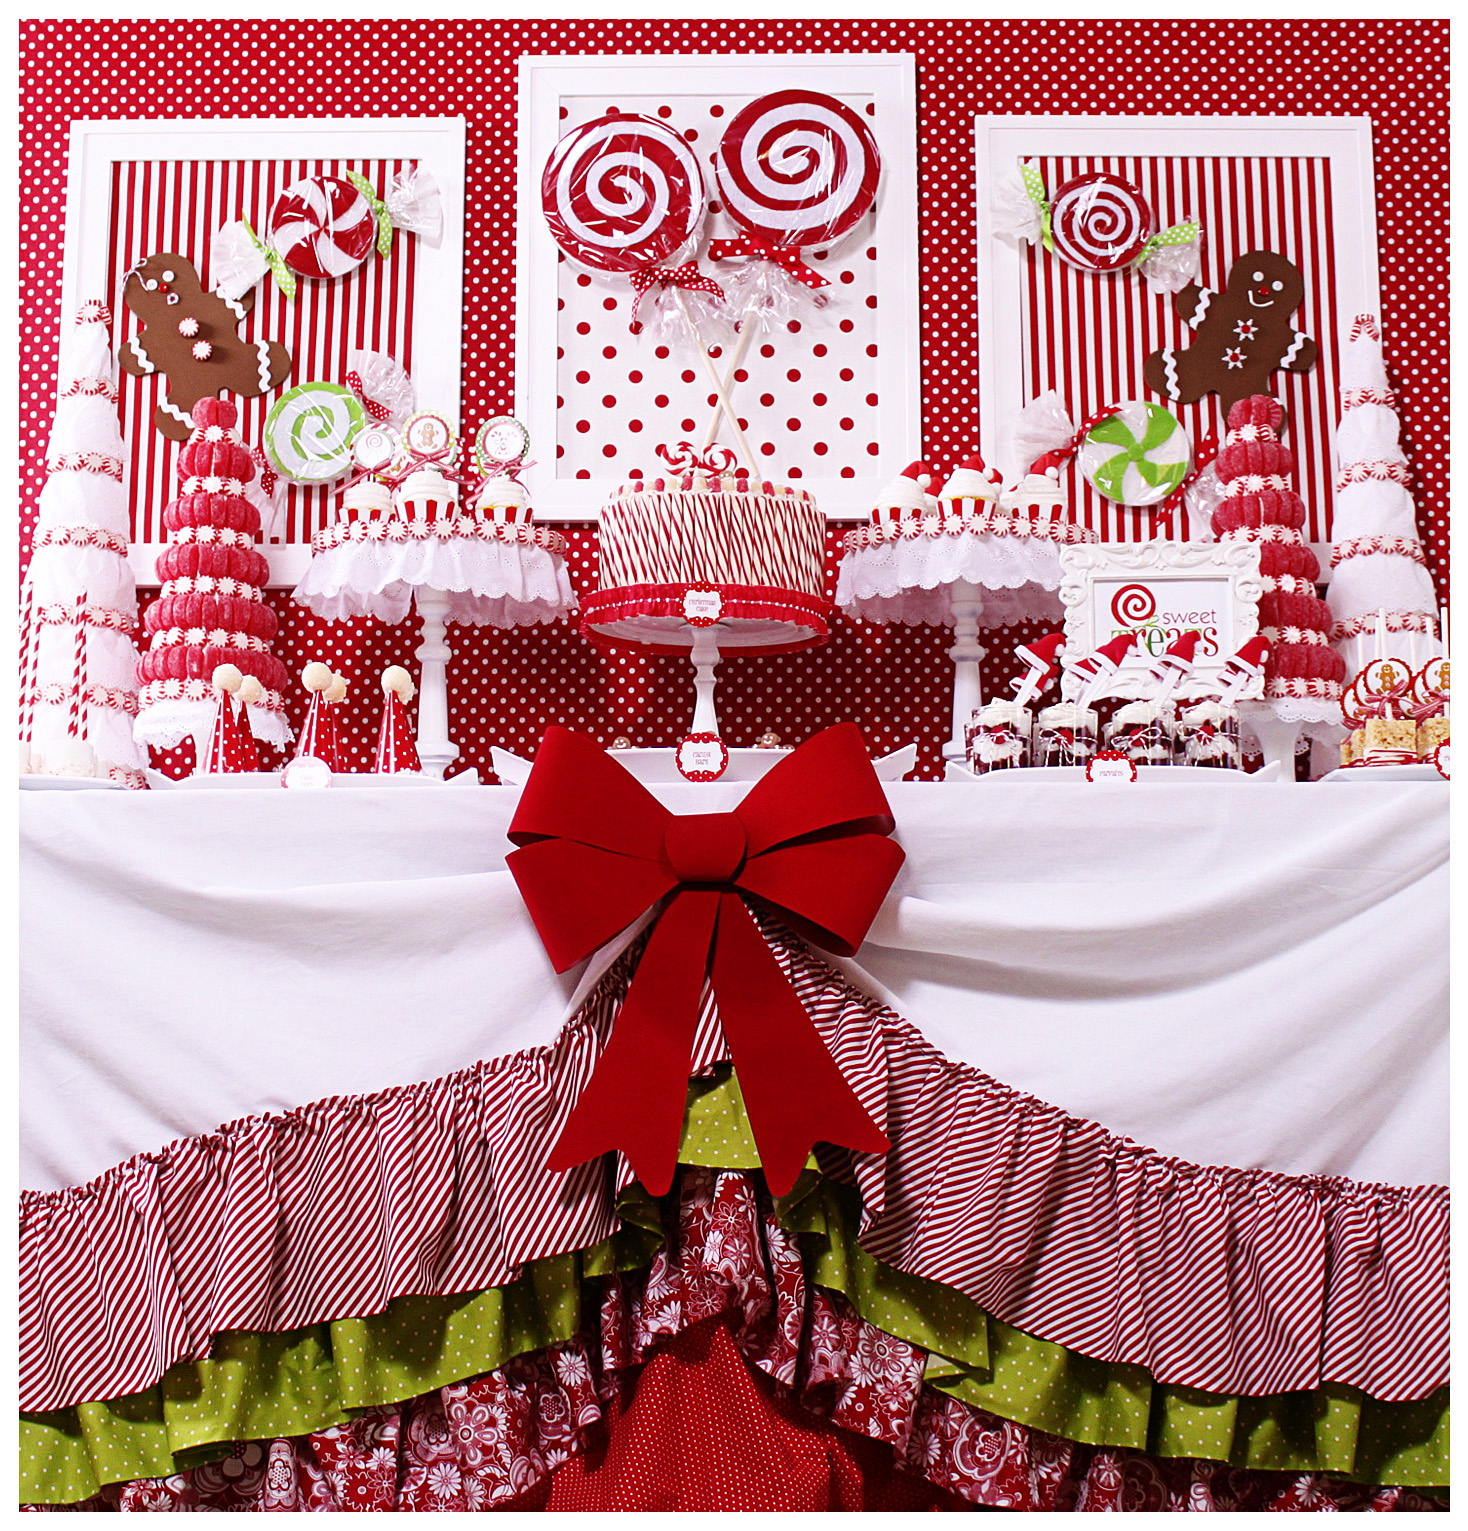 Table decoration for party - Candy Christmas Dessert Table